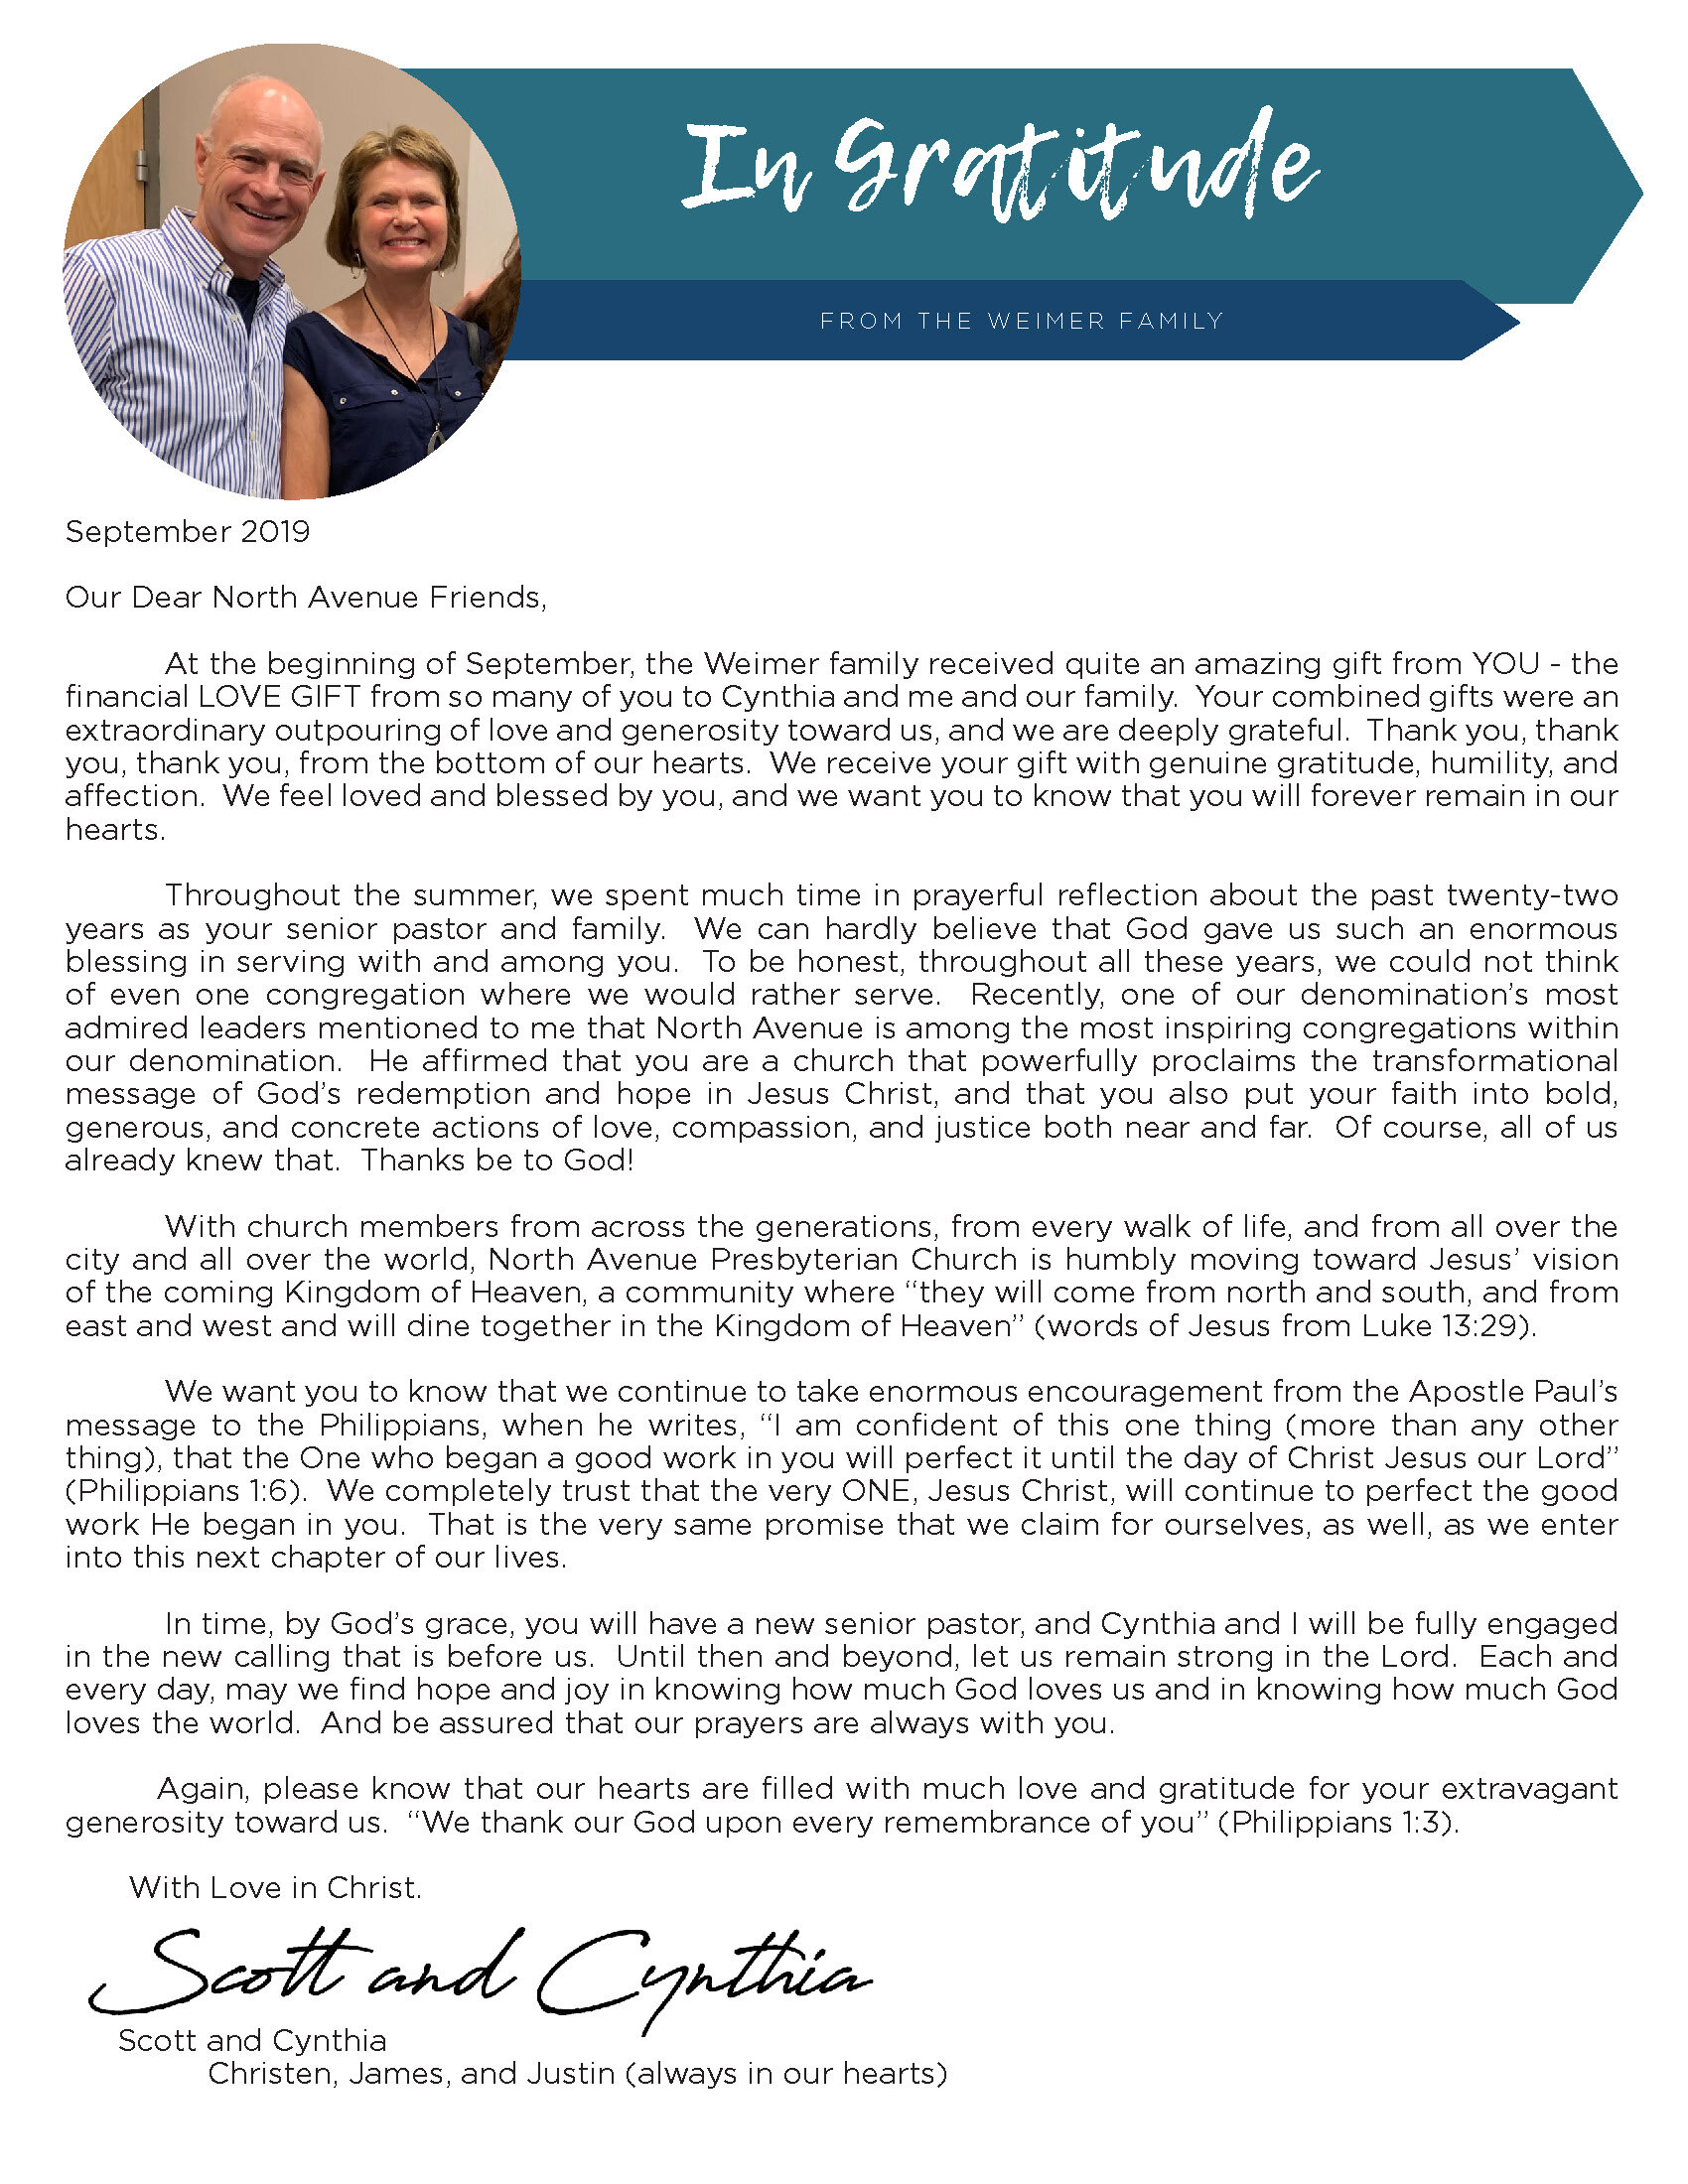 Letter from Weimers 09272019.jpg